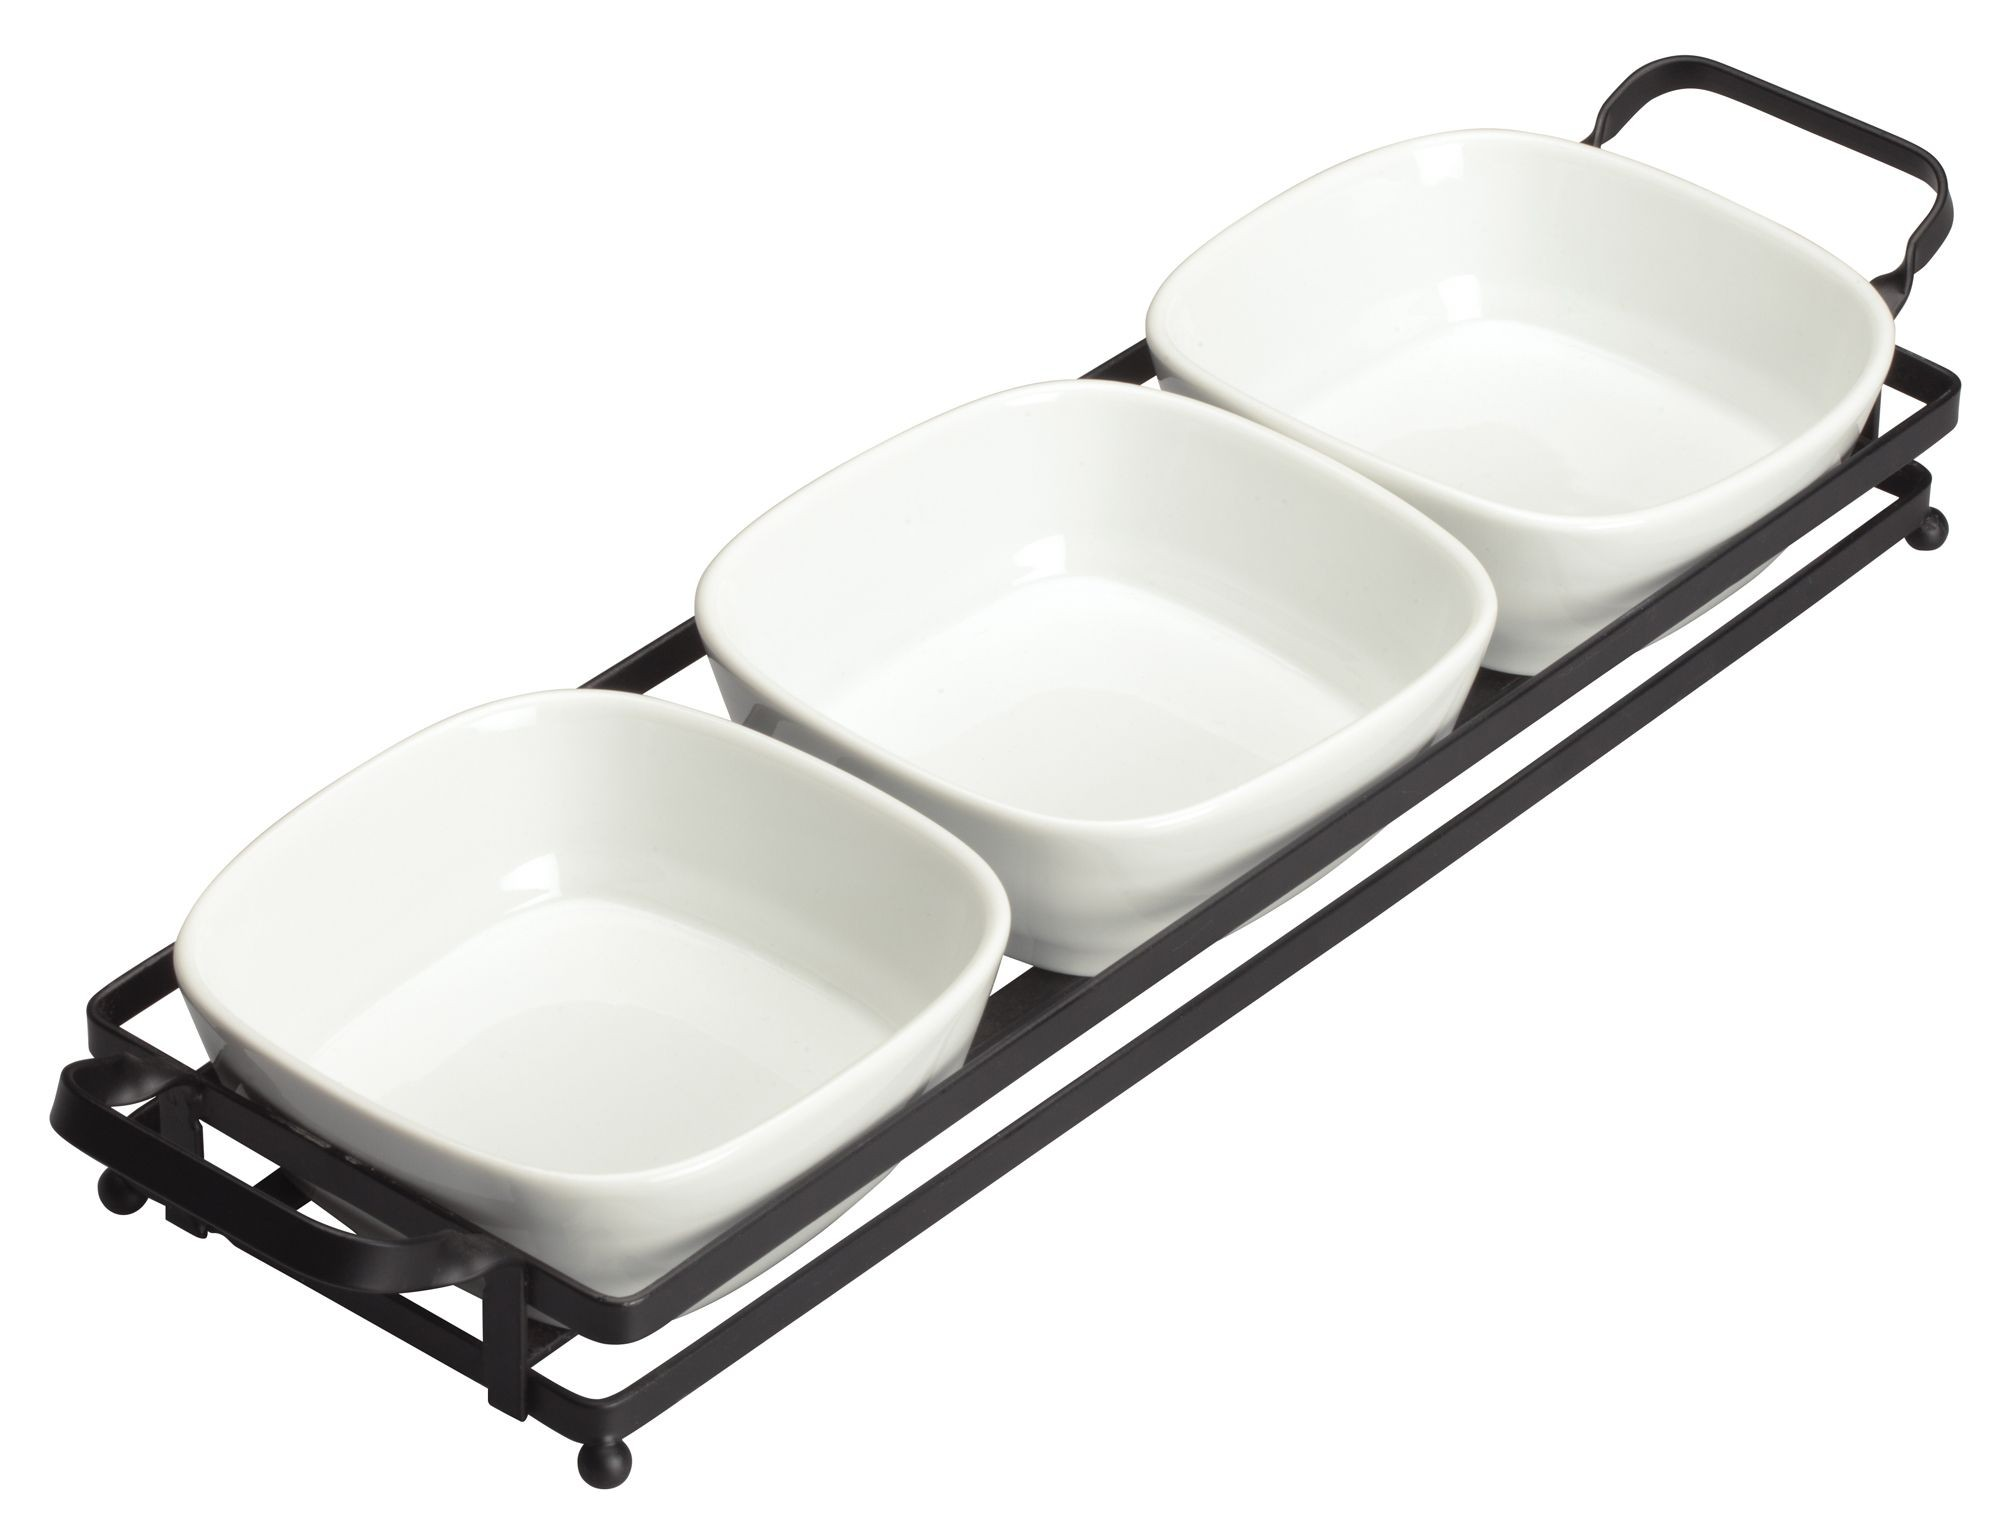 "Winco WDP014-102 Newry Porcelain Trio Set with Stand 16-1/2"" x 4-5/8"""